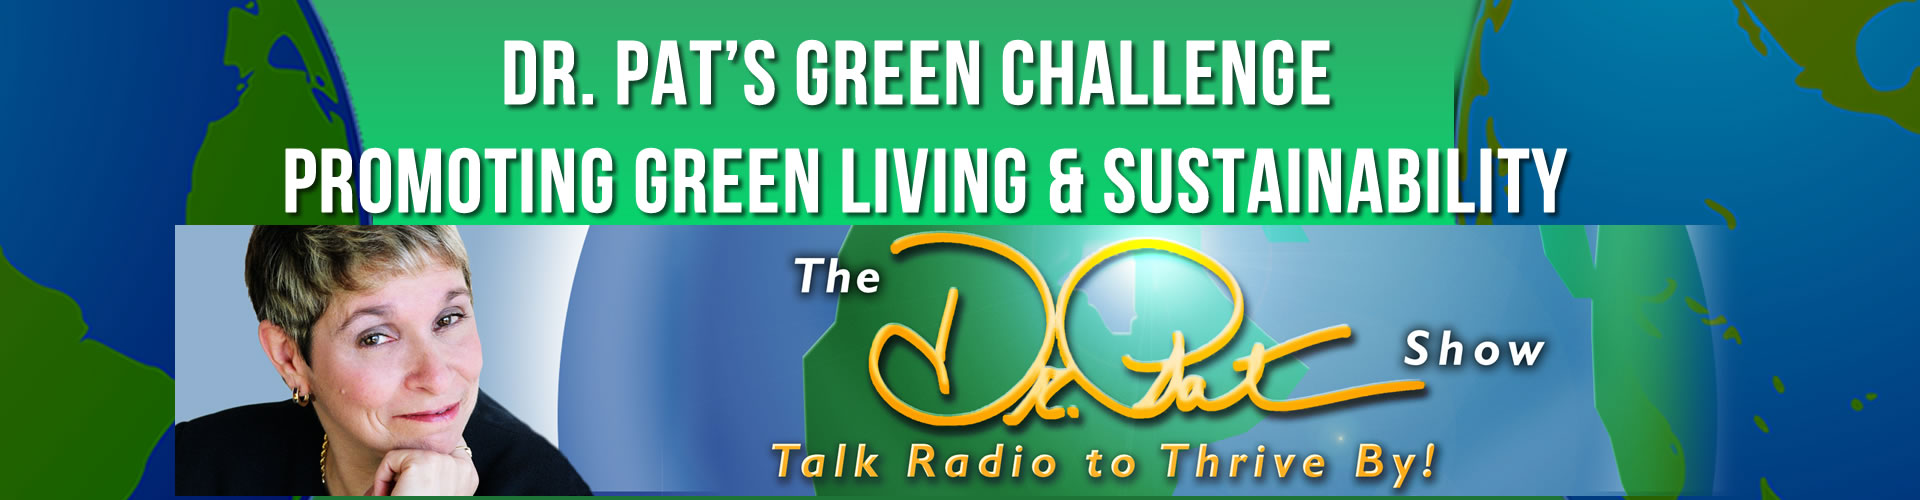 Dr. Pat Baccili - Dr. Pat's Green Challenge